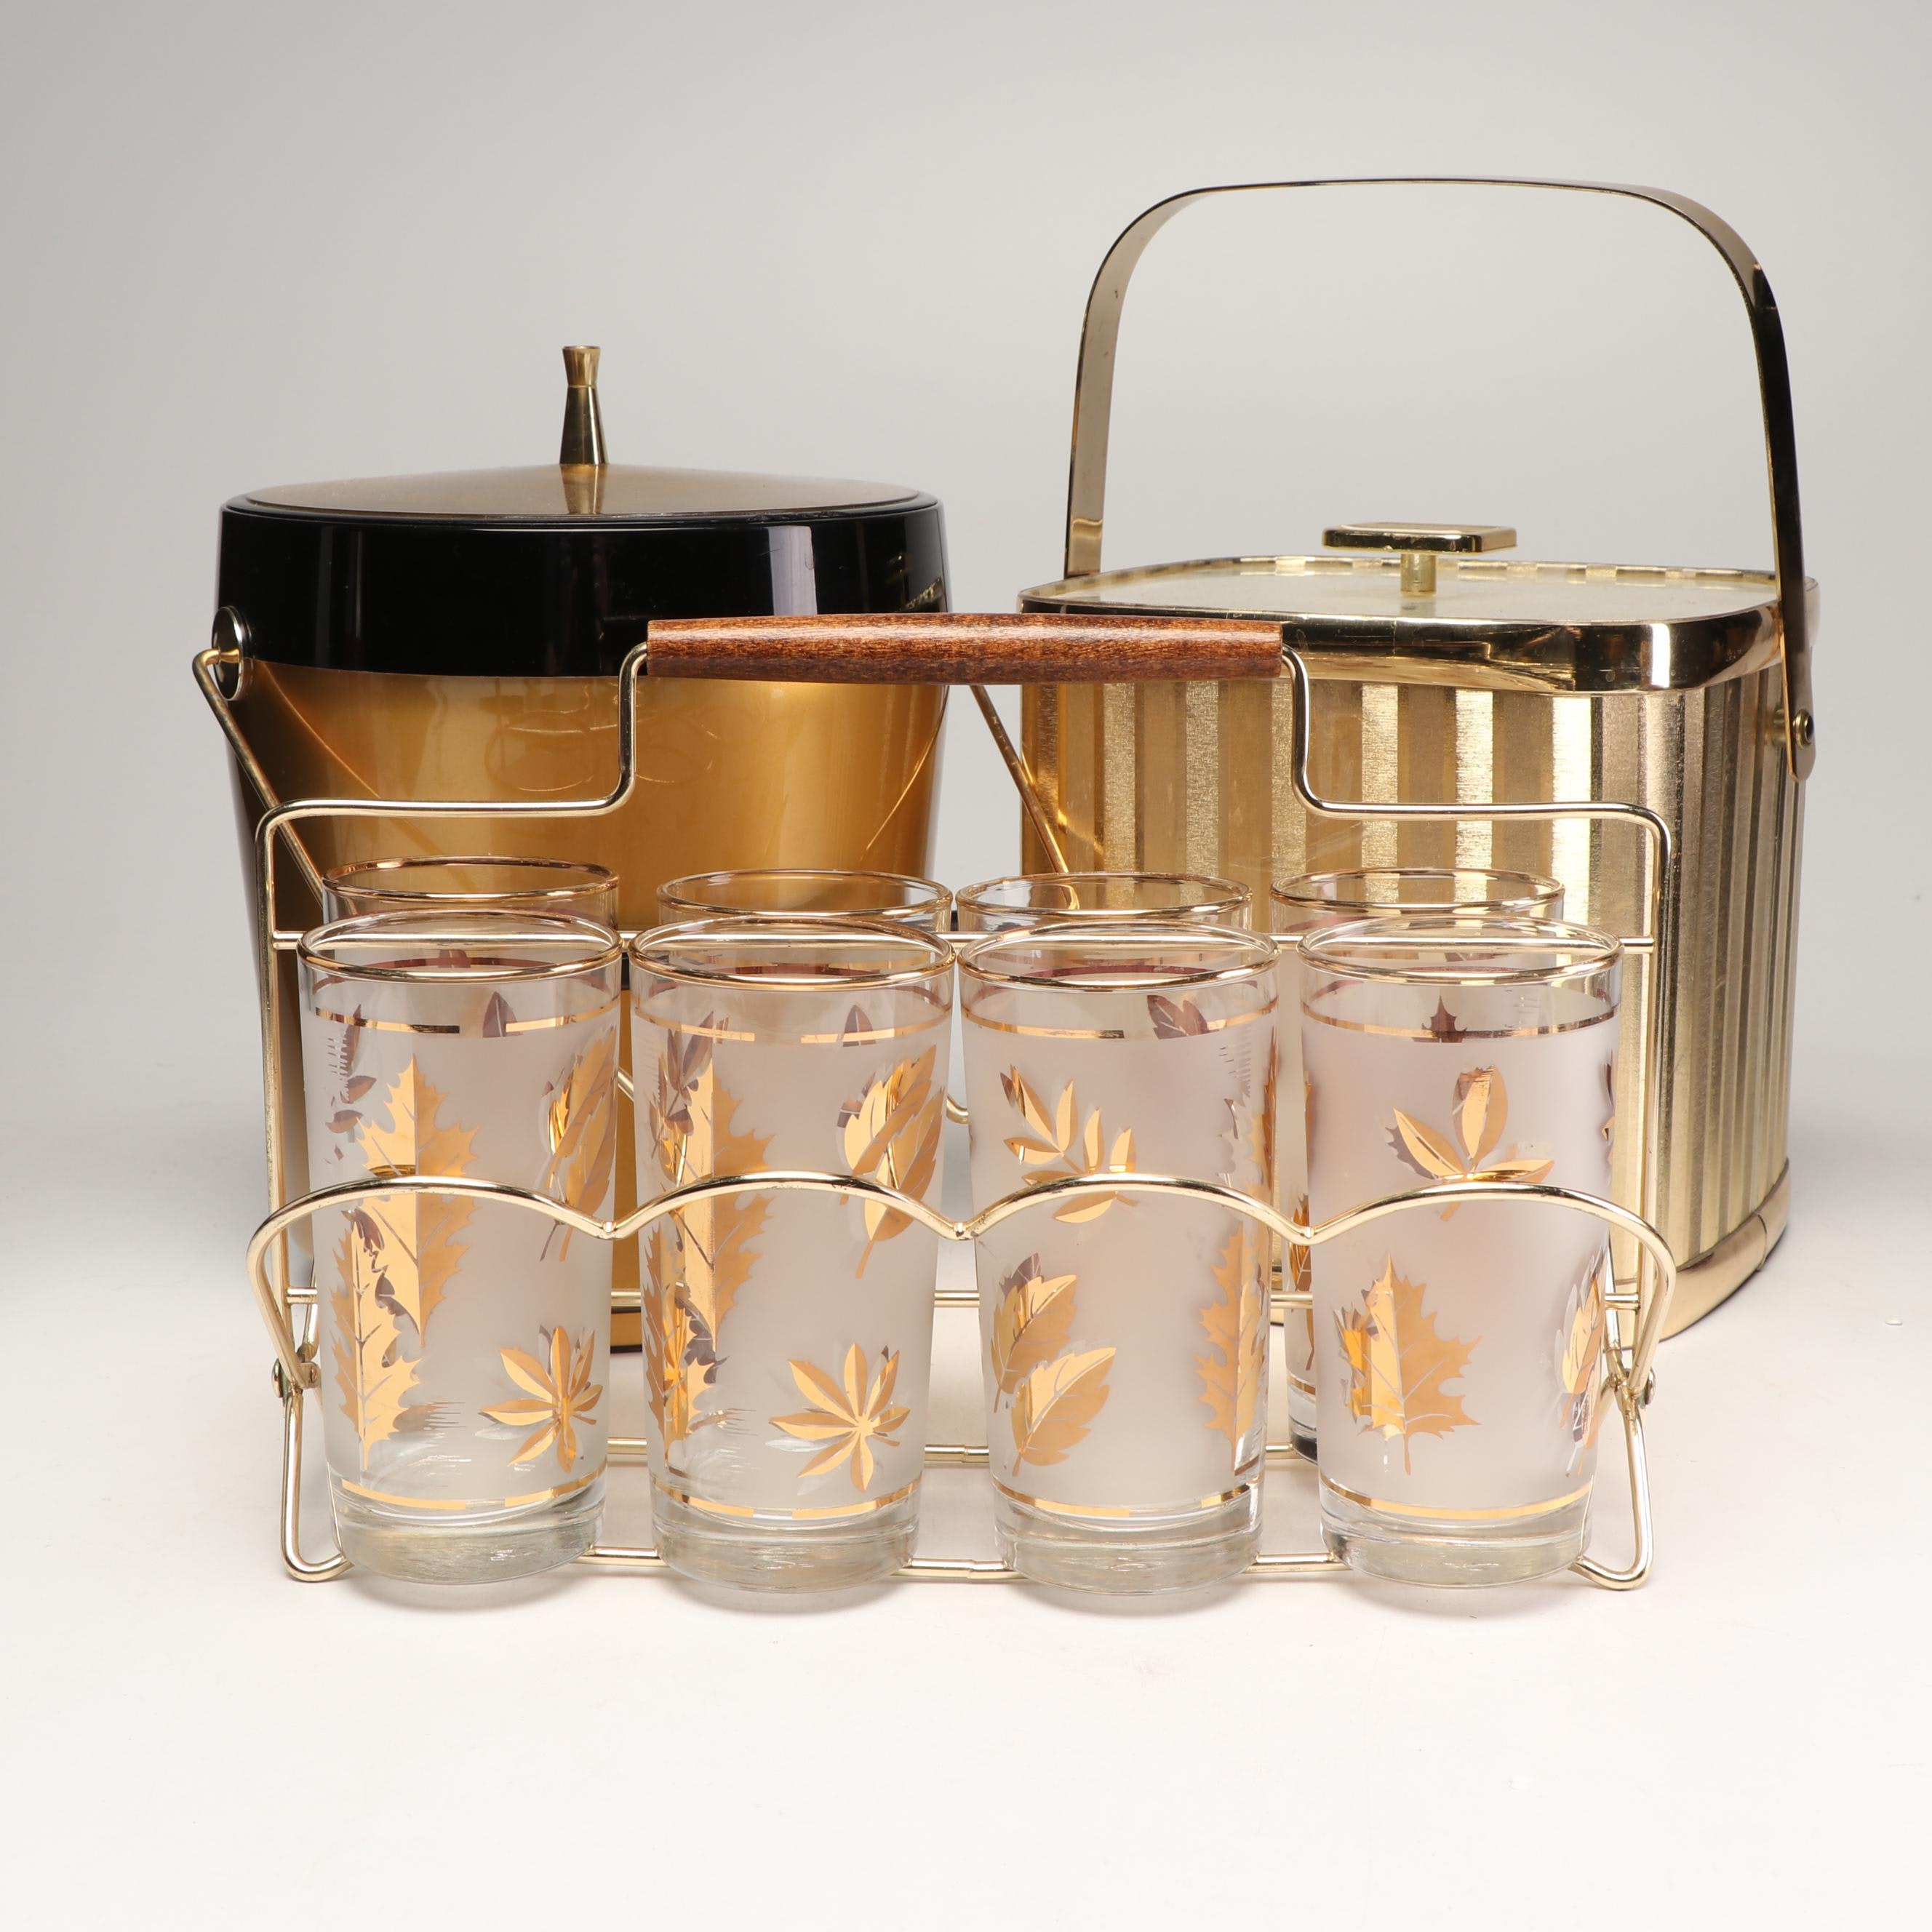 "Libbey ""Golden Foliage"" Tumblers with Gold Toned Ice Buckets, 1950s-1970s"